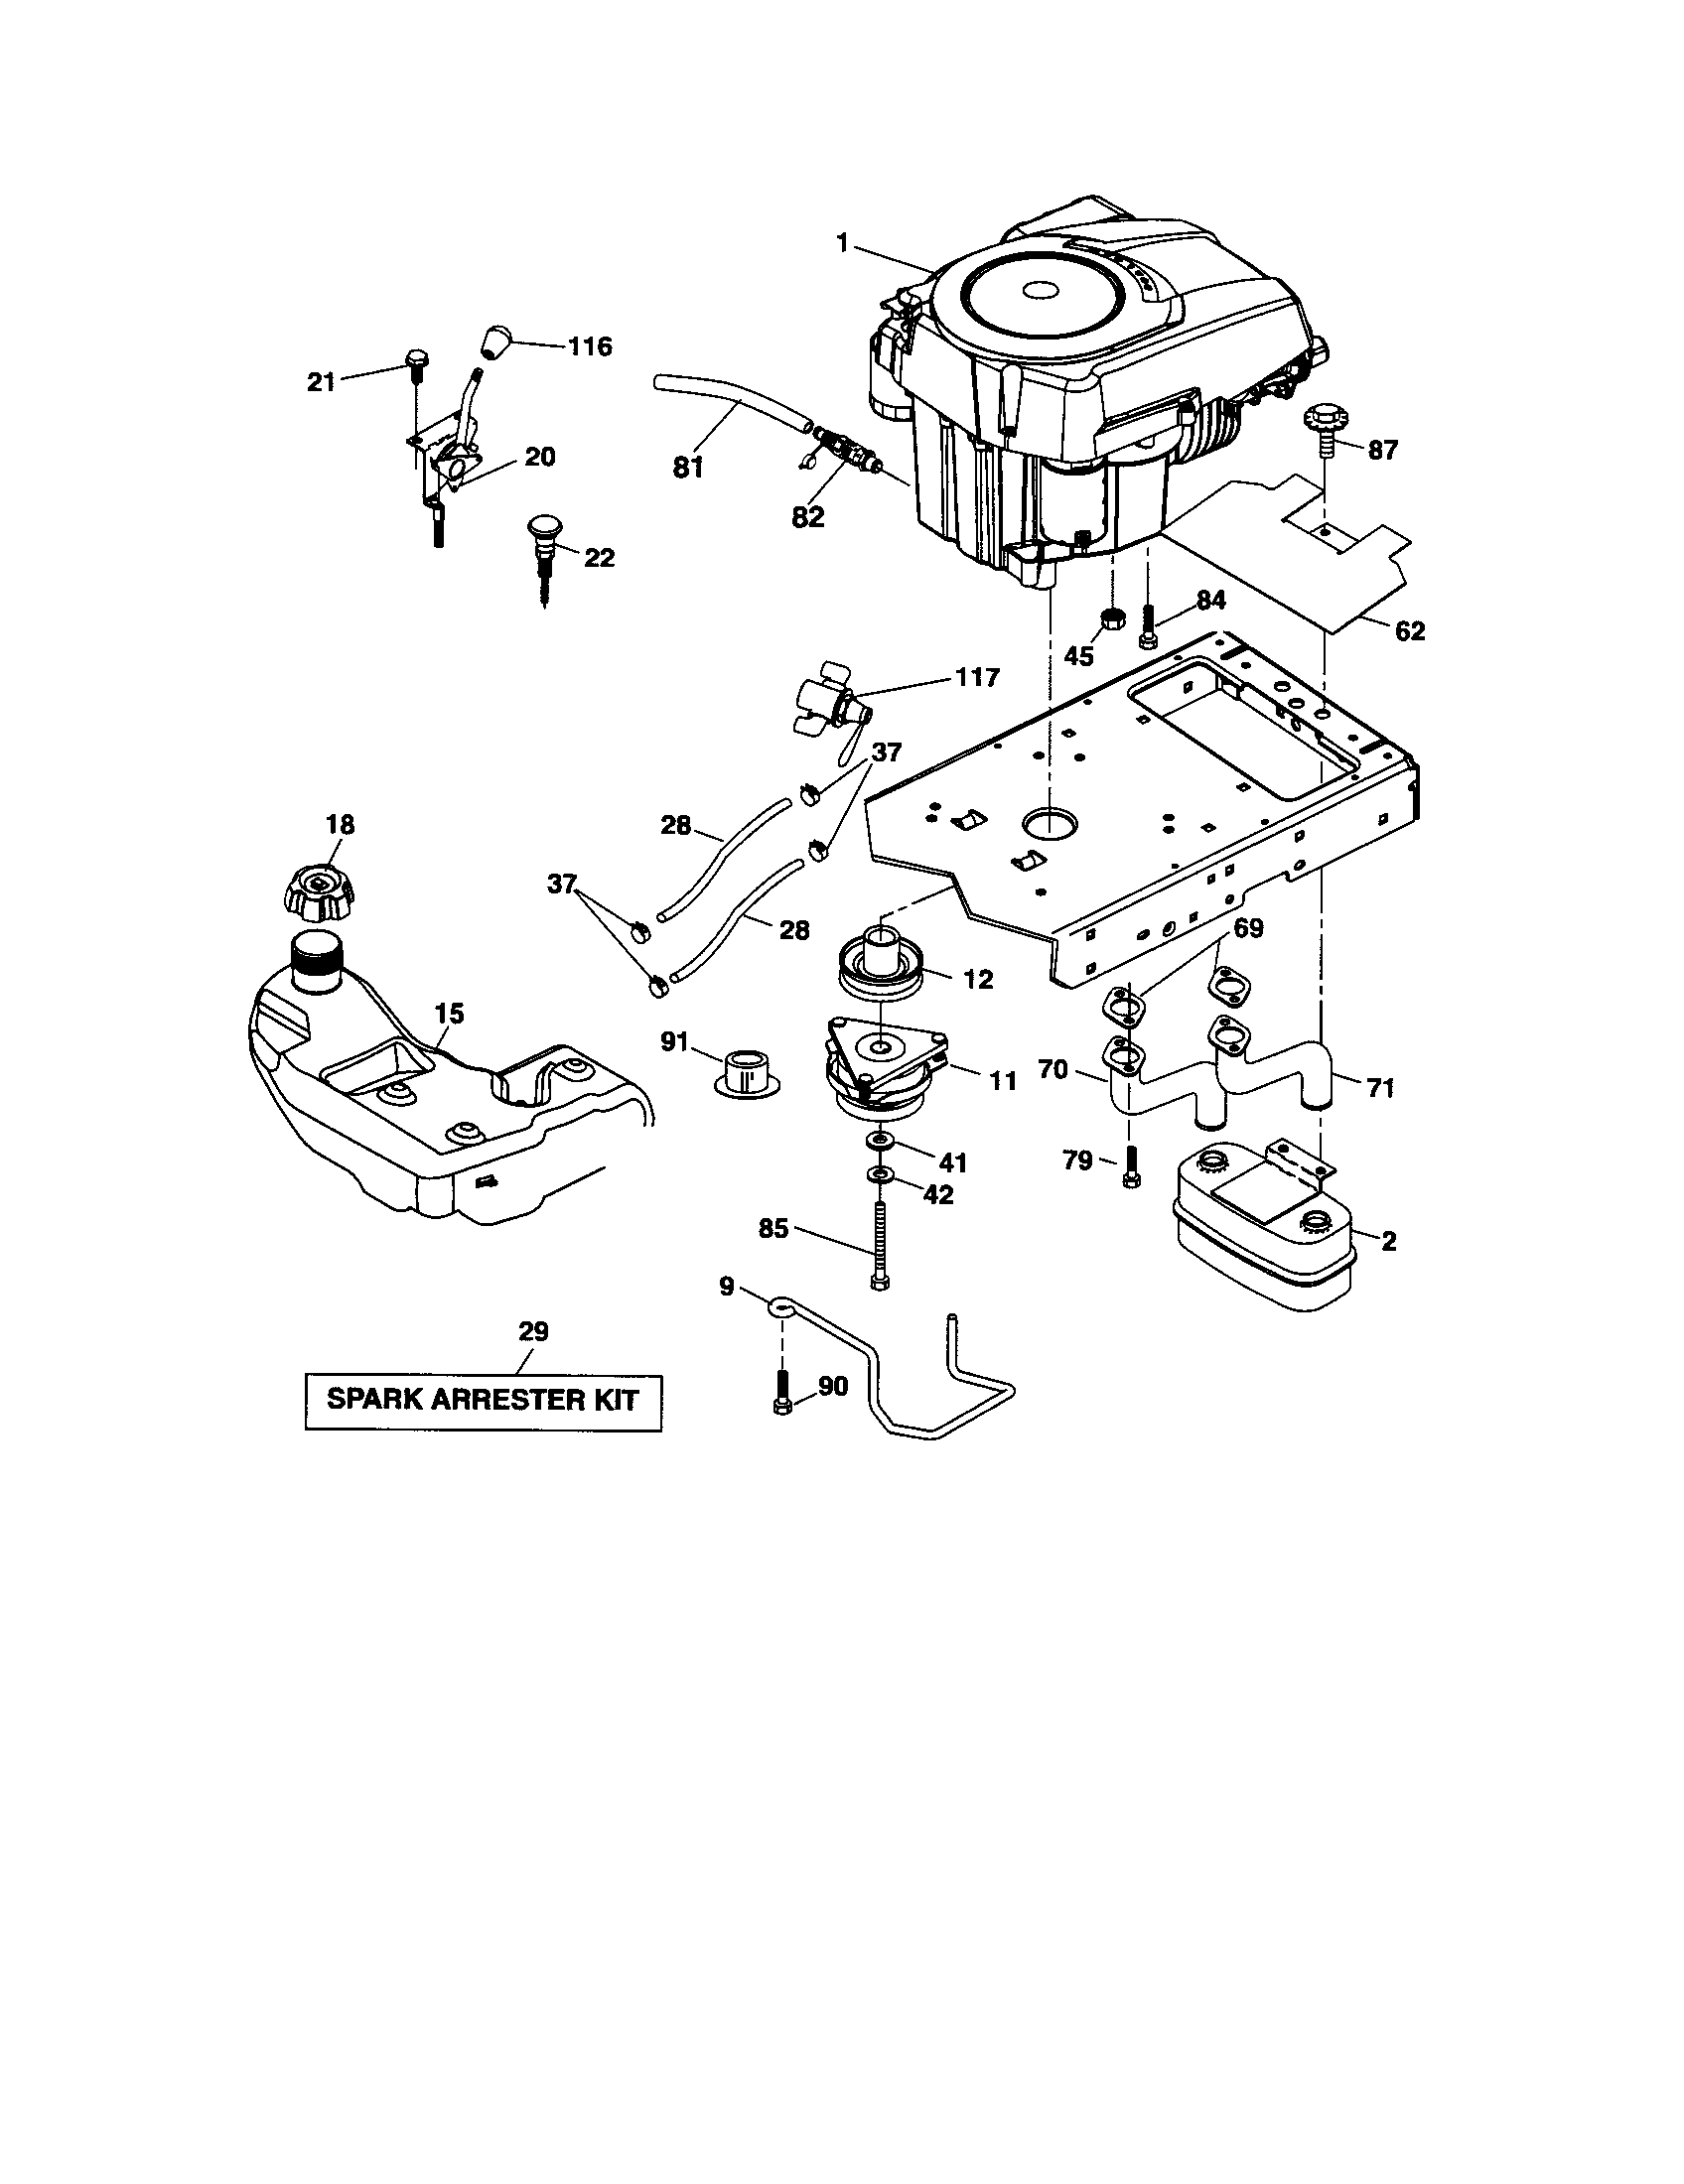 Craftsman model 917289472 lawn tractor genuine parts scott's lawn service scotts l2548 wiring diagram